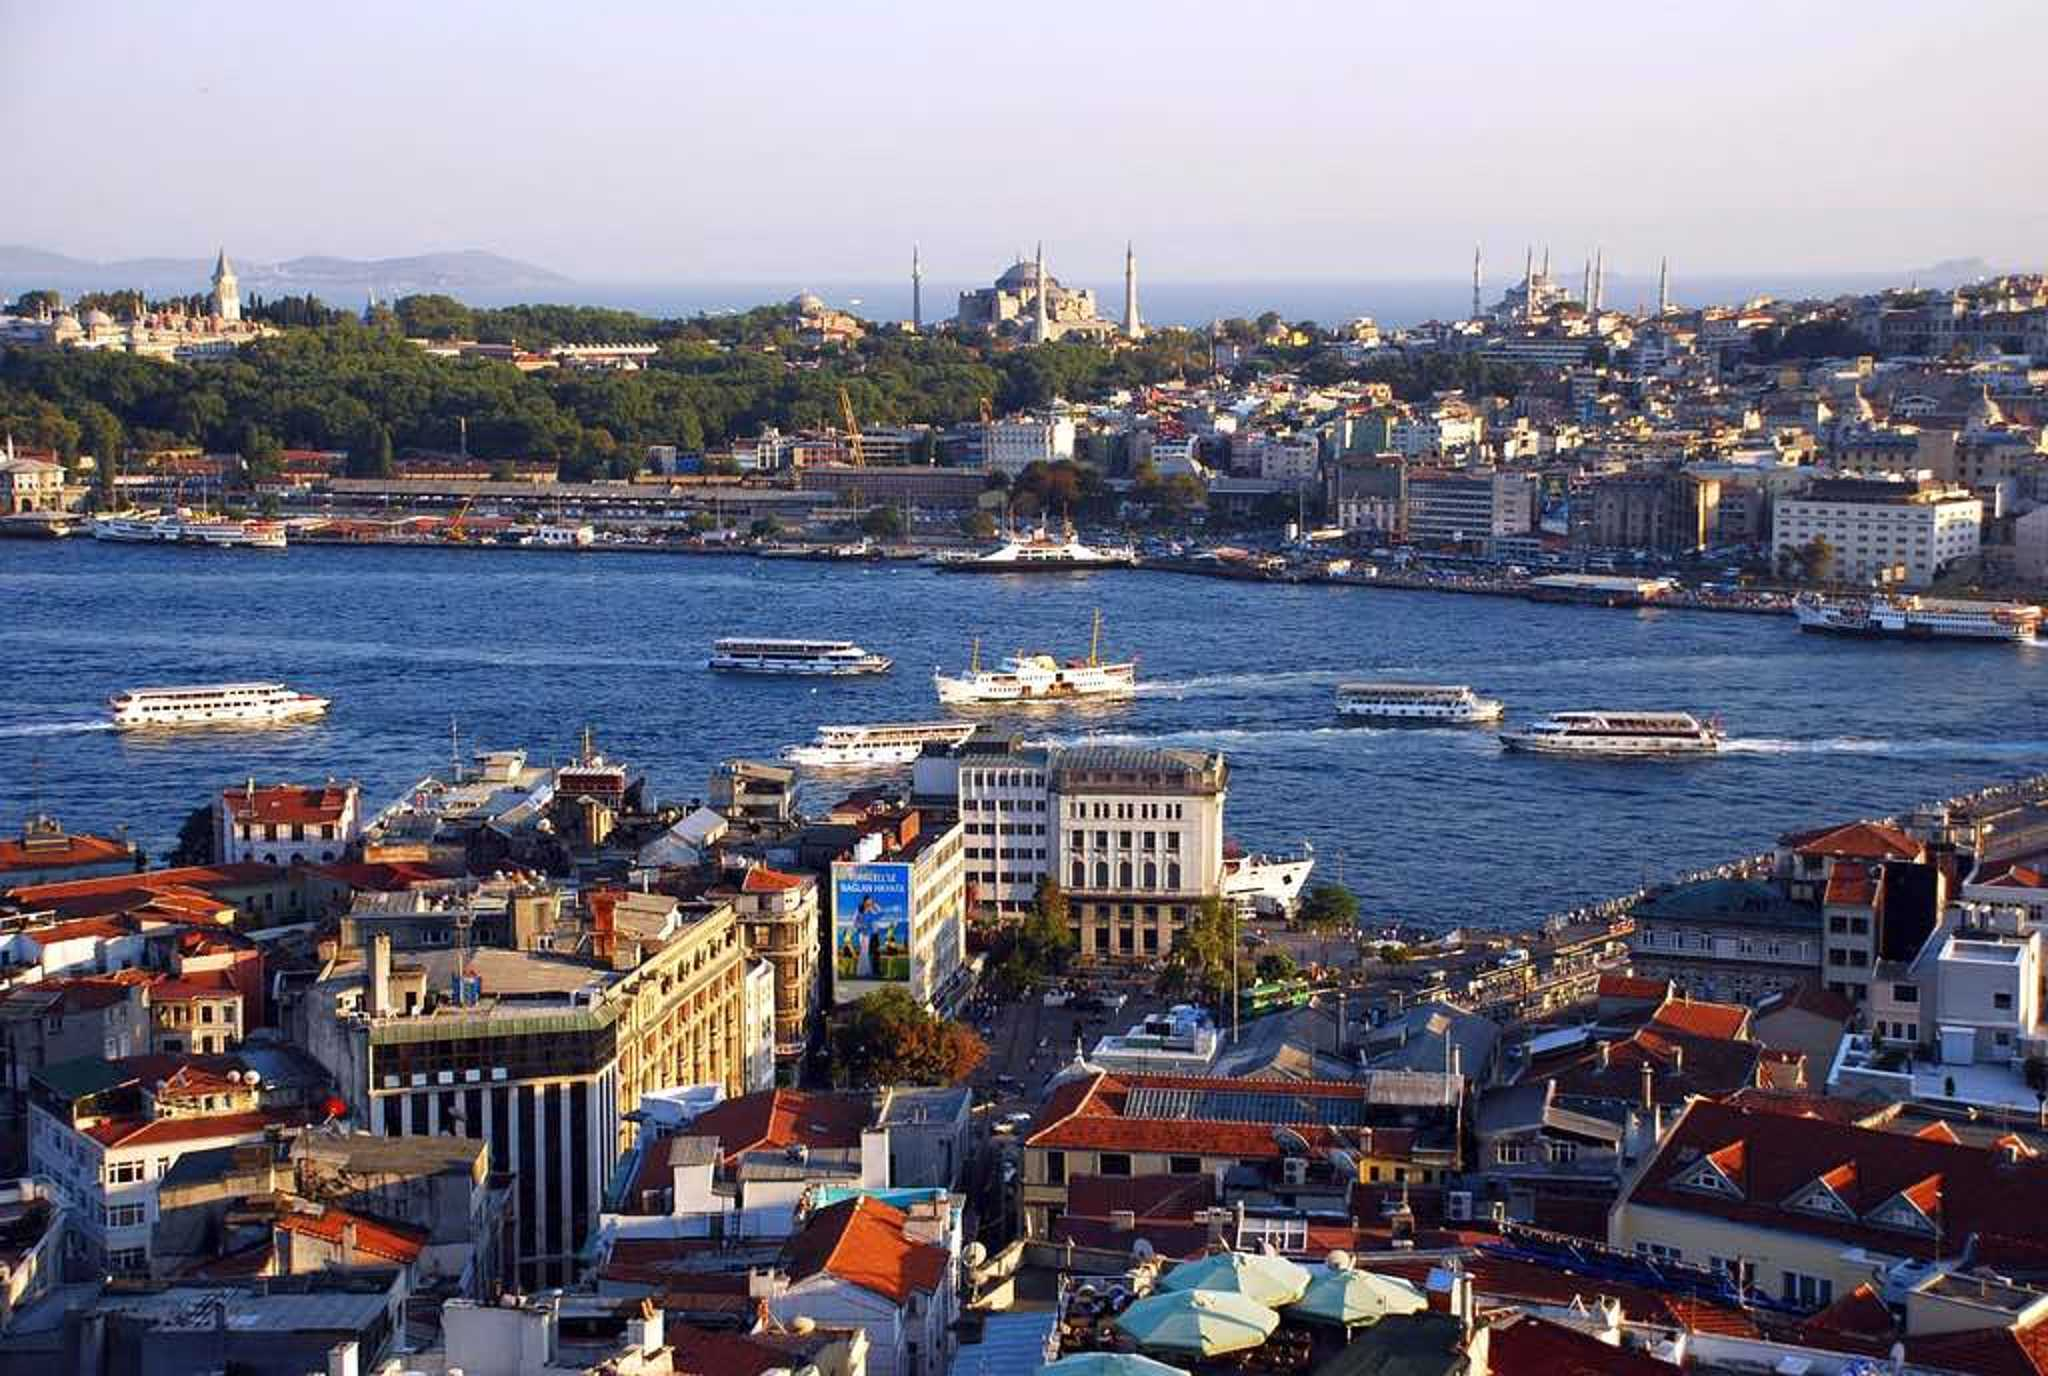 Check out the views from the Galata Tower!